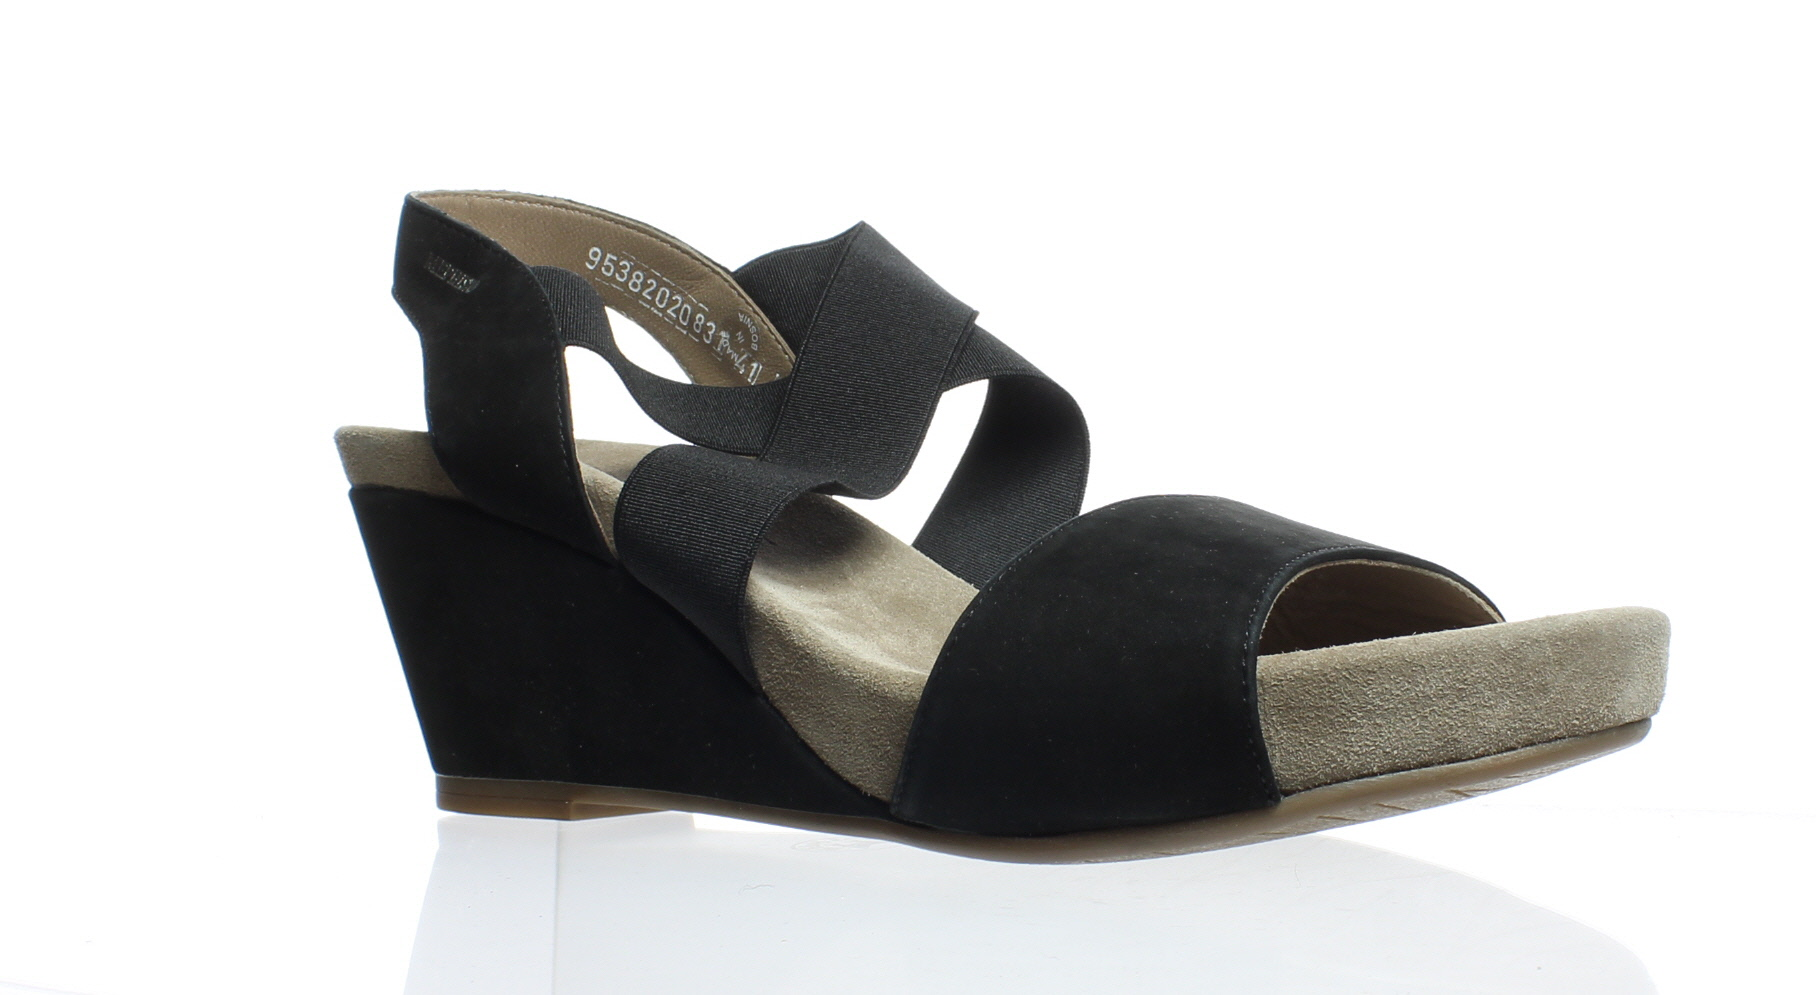 21d2f6ffdc New Mephisto Womens Barbara Black Bucksoft Sandals Size 11 | eBay